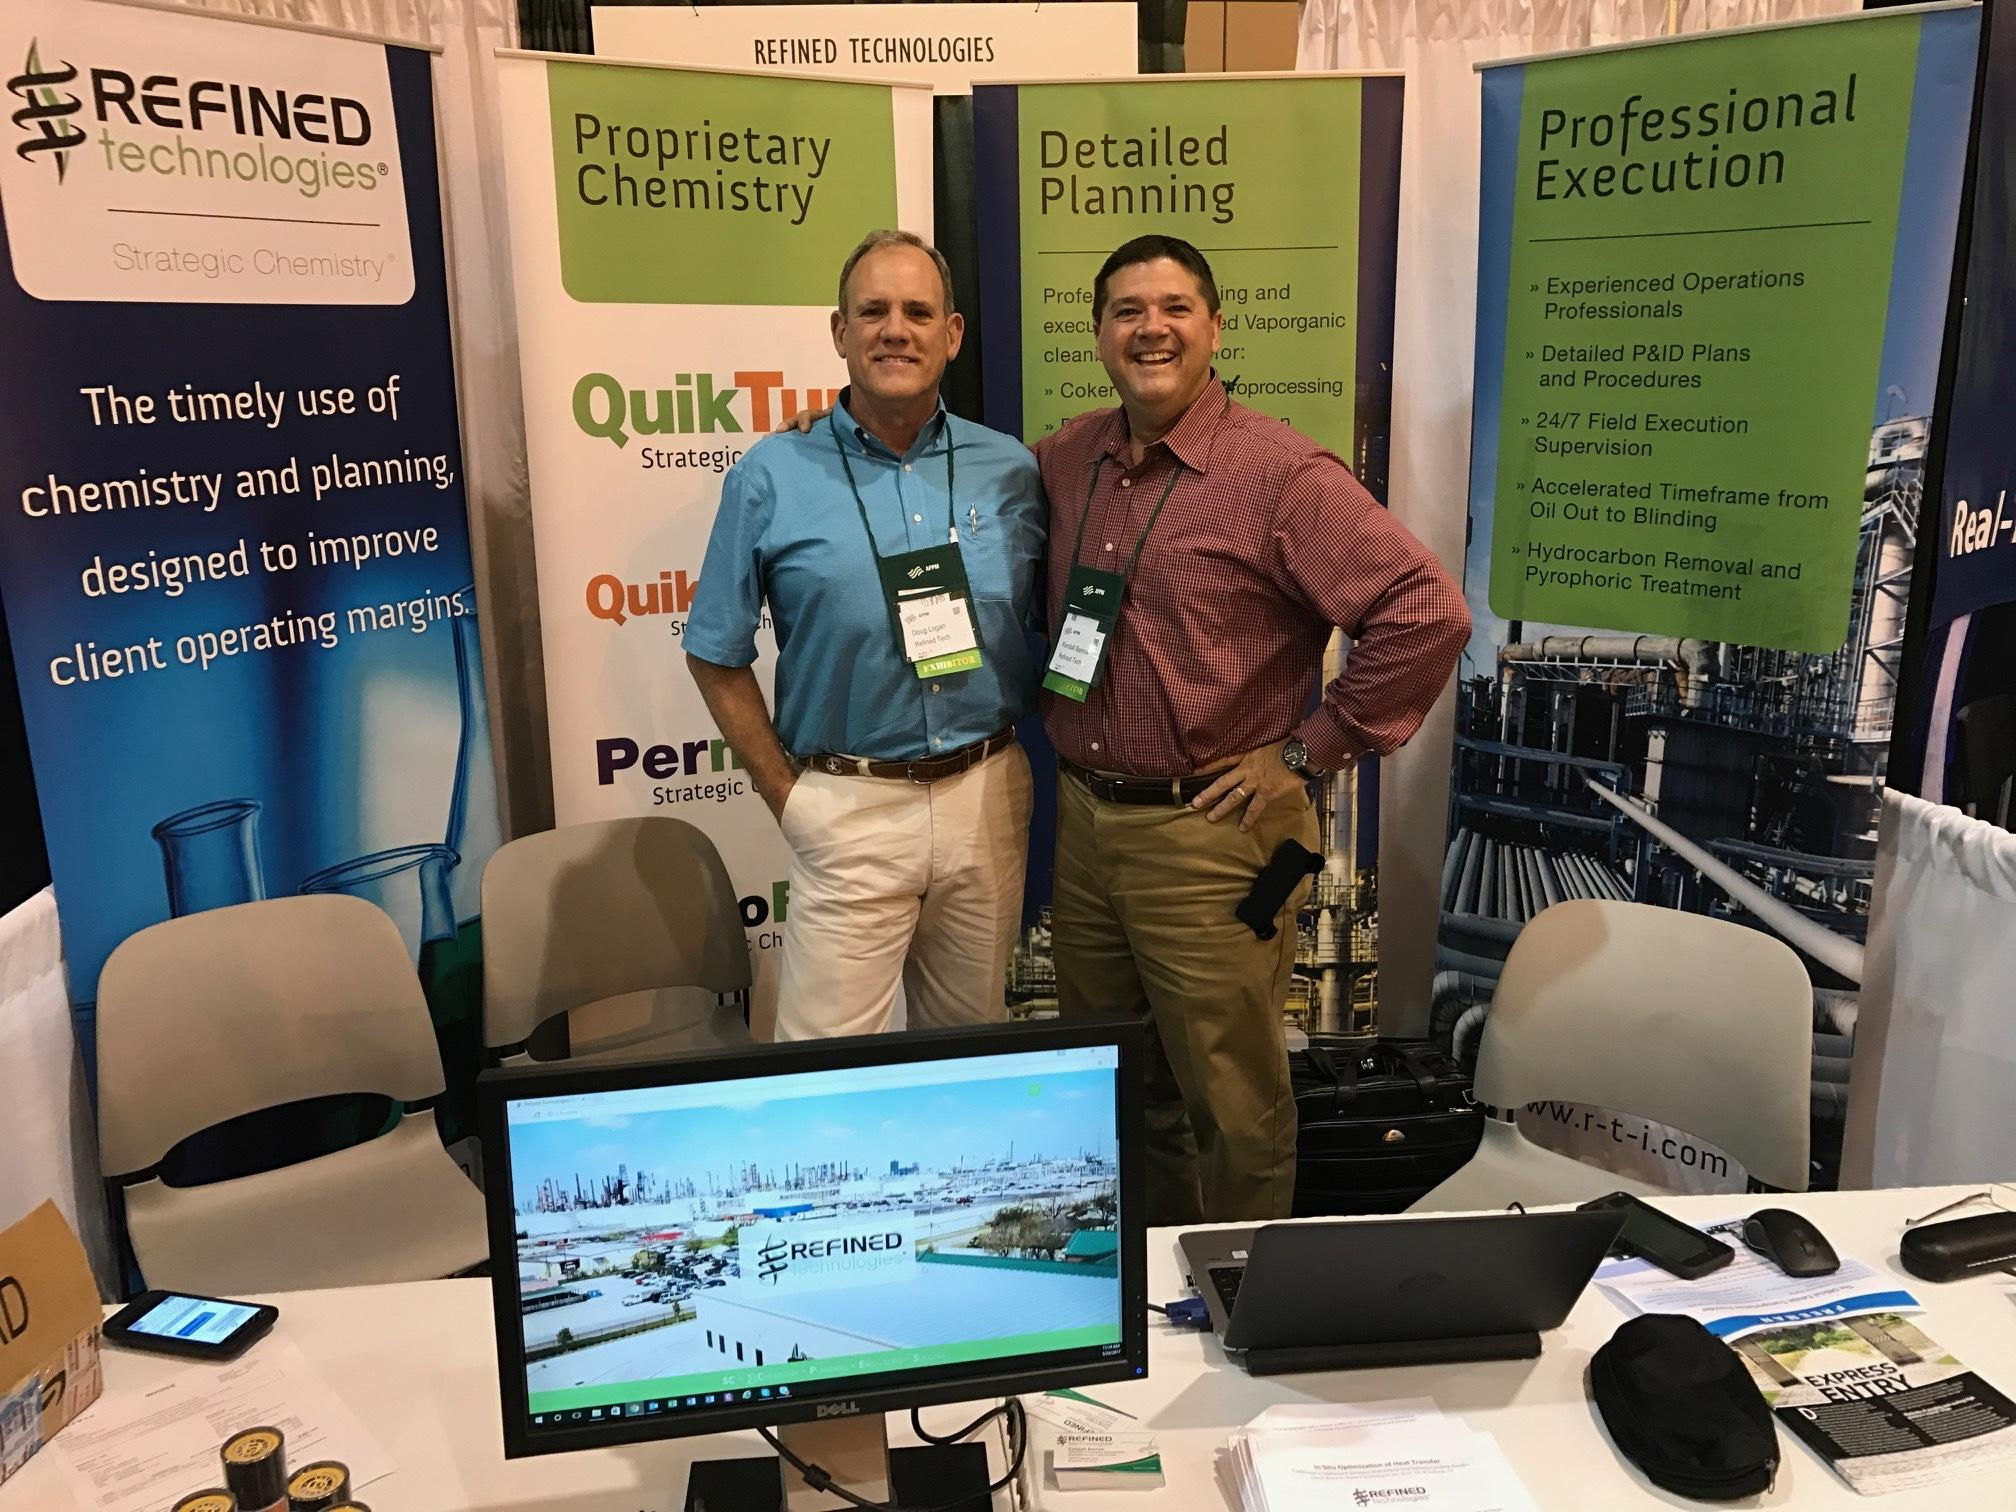 Stop by and say hello to Doug Logan and Kendall Barrow in Booth #120 at the AFPM Reliability & Maintenance Conference and Exhibition